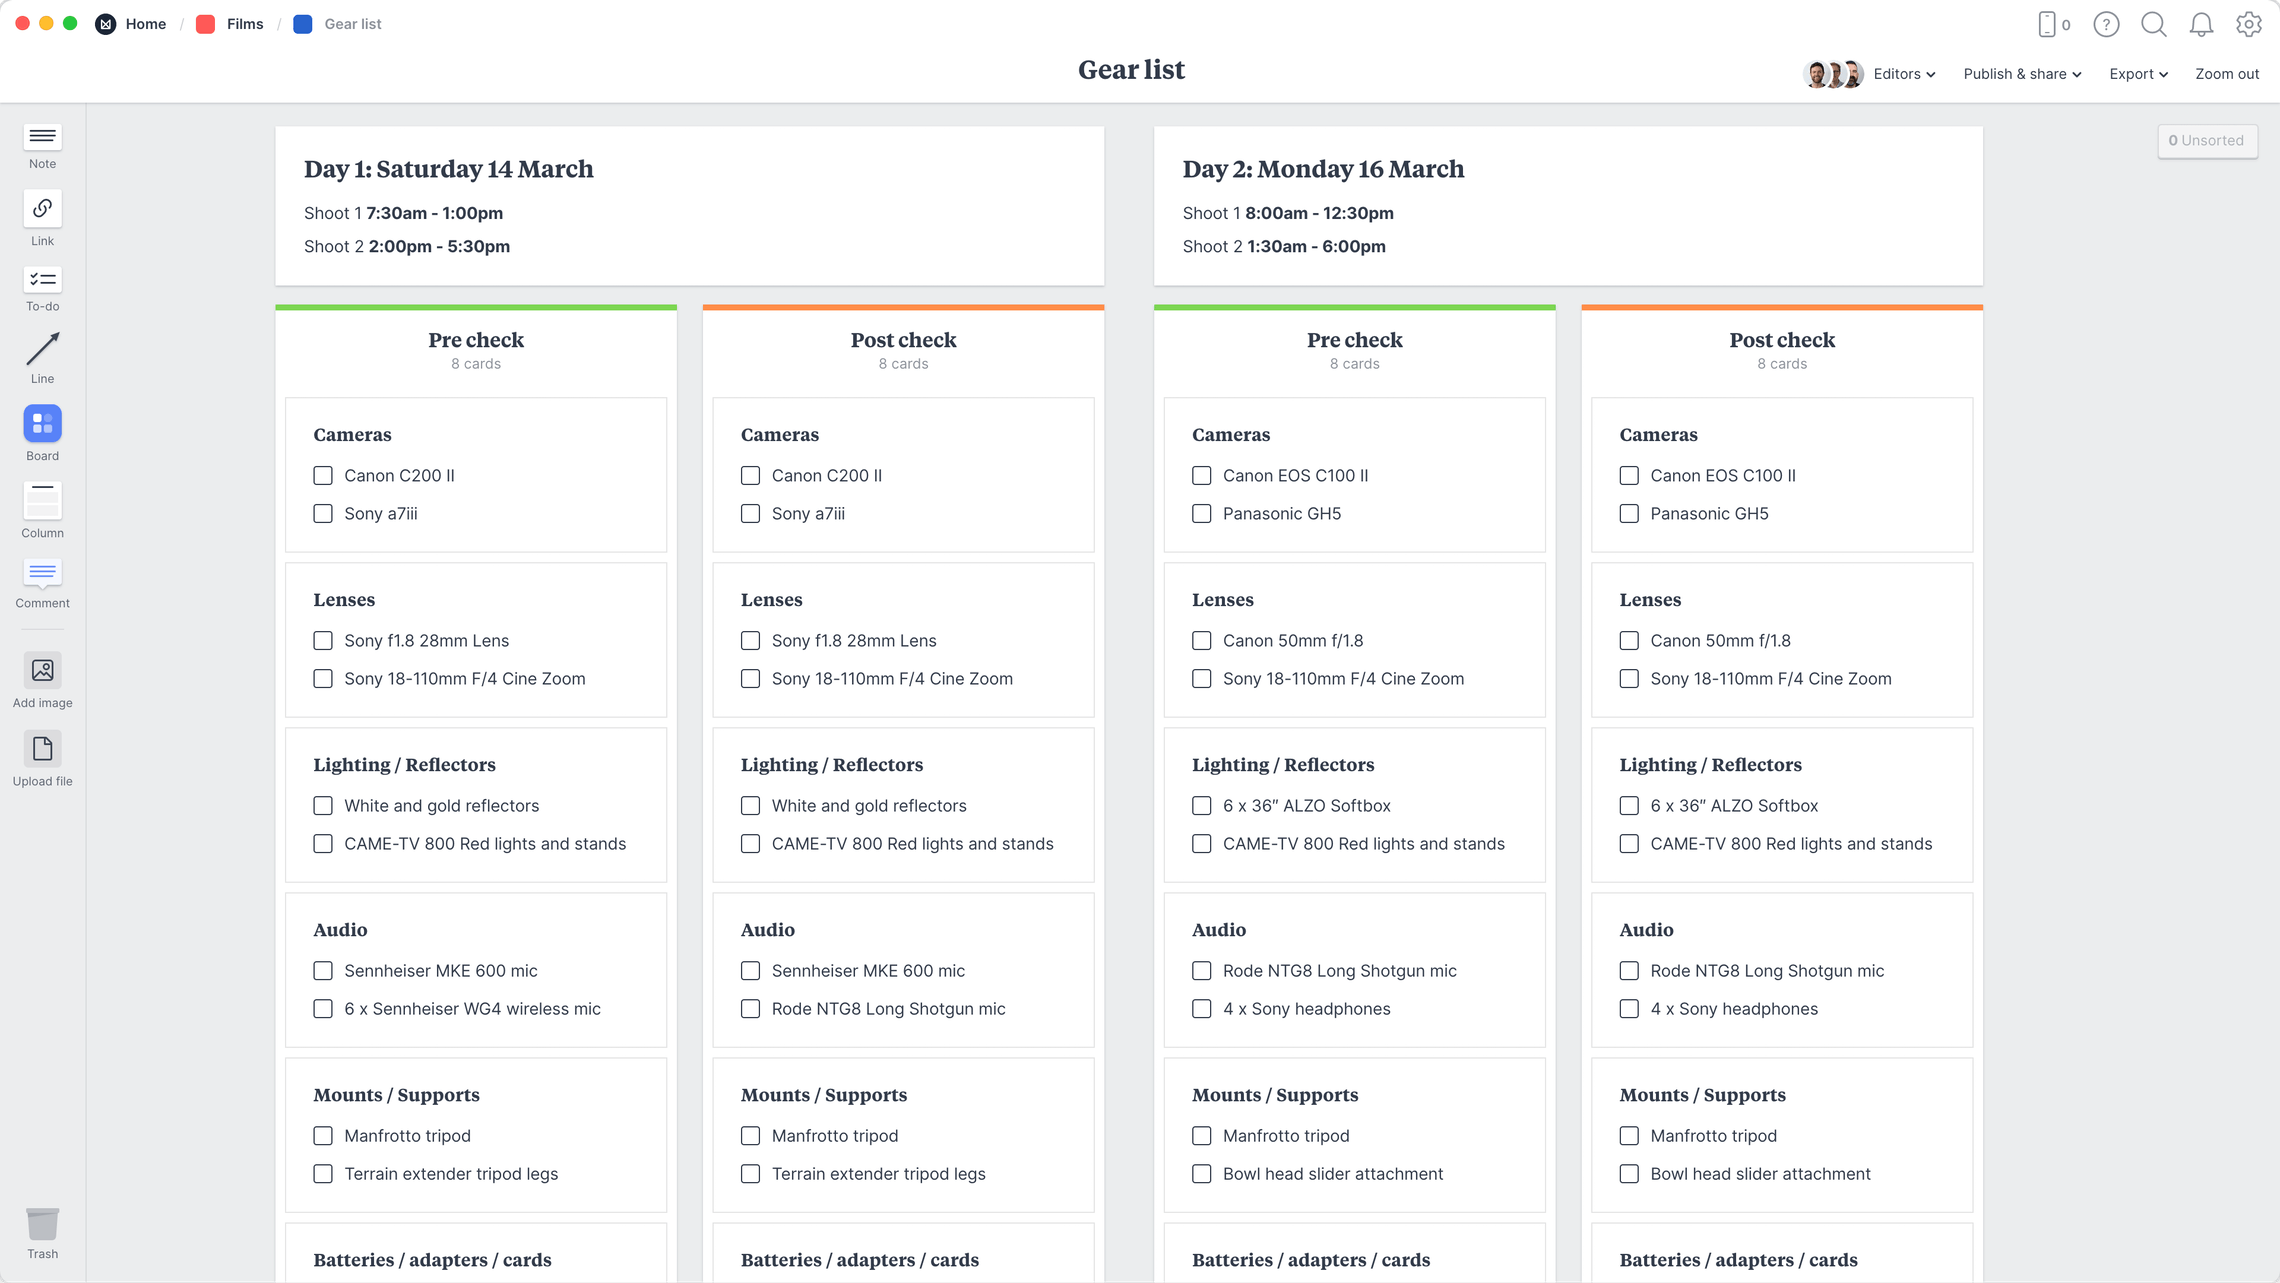 Film Equipment Checklist Template, within the Milanote app